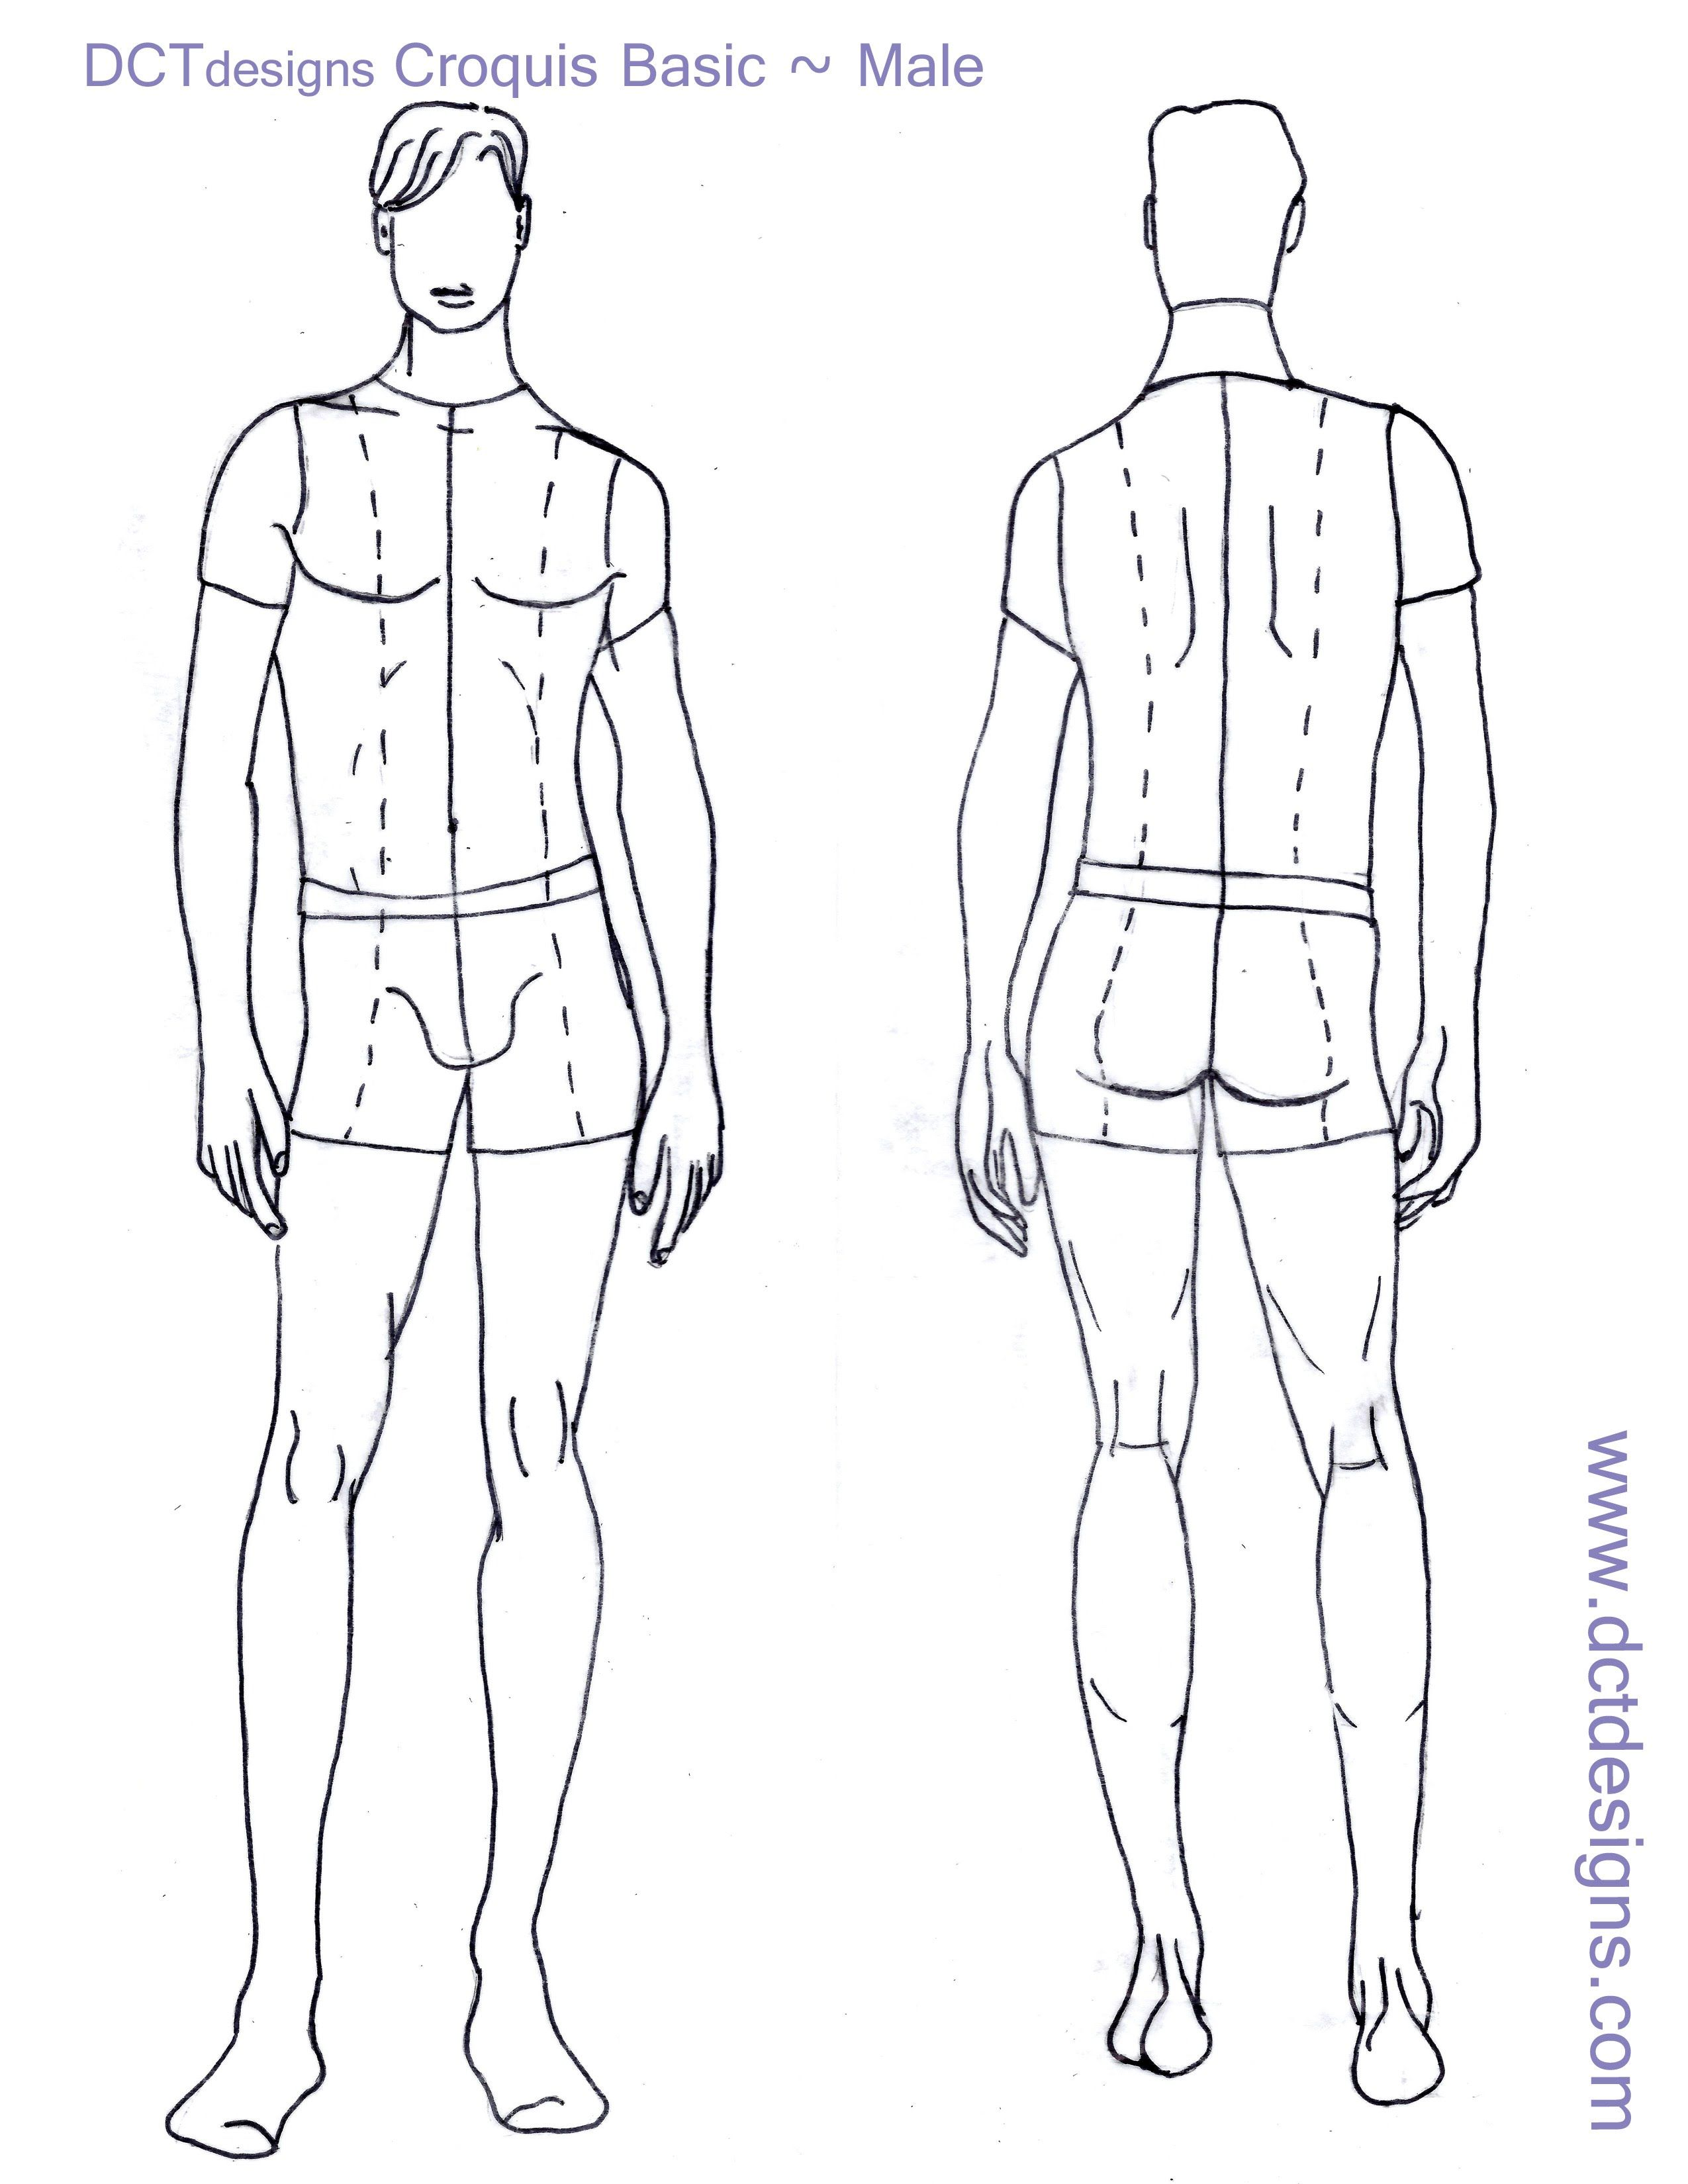 Fashion Design Template - Man.jpg (2550×3300) | drawing | Pinterest ...